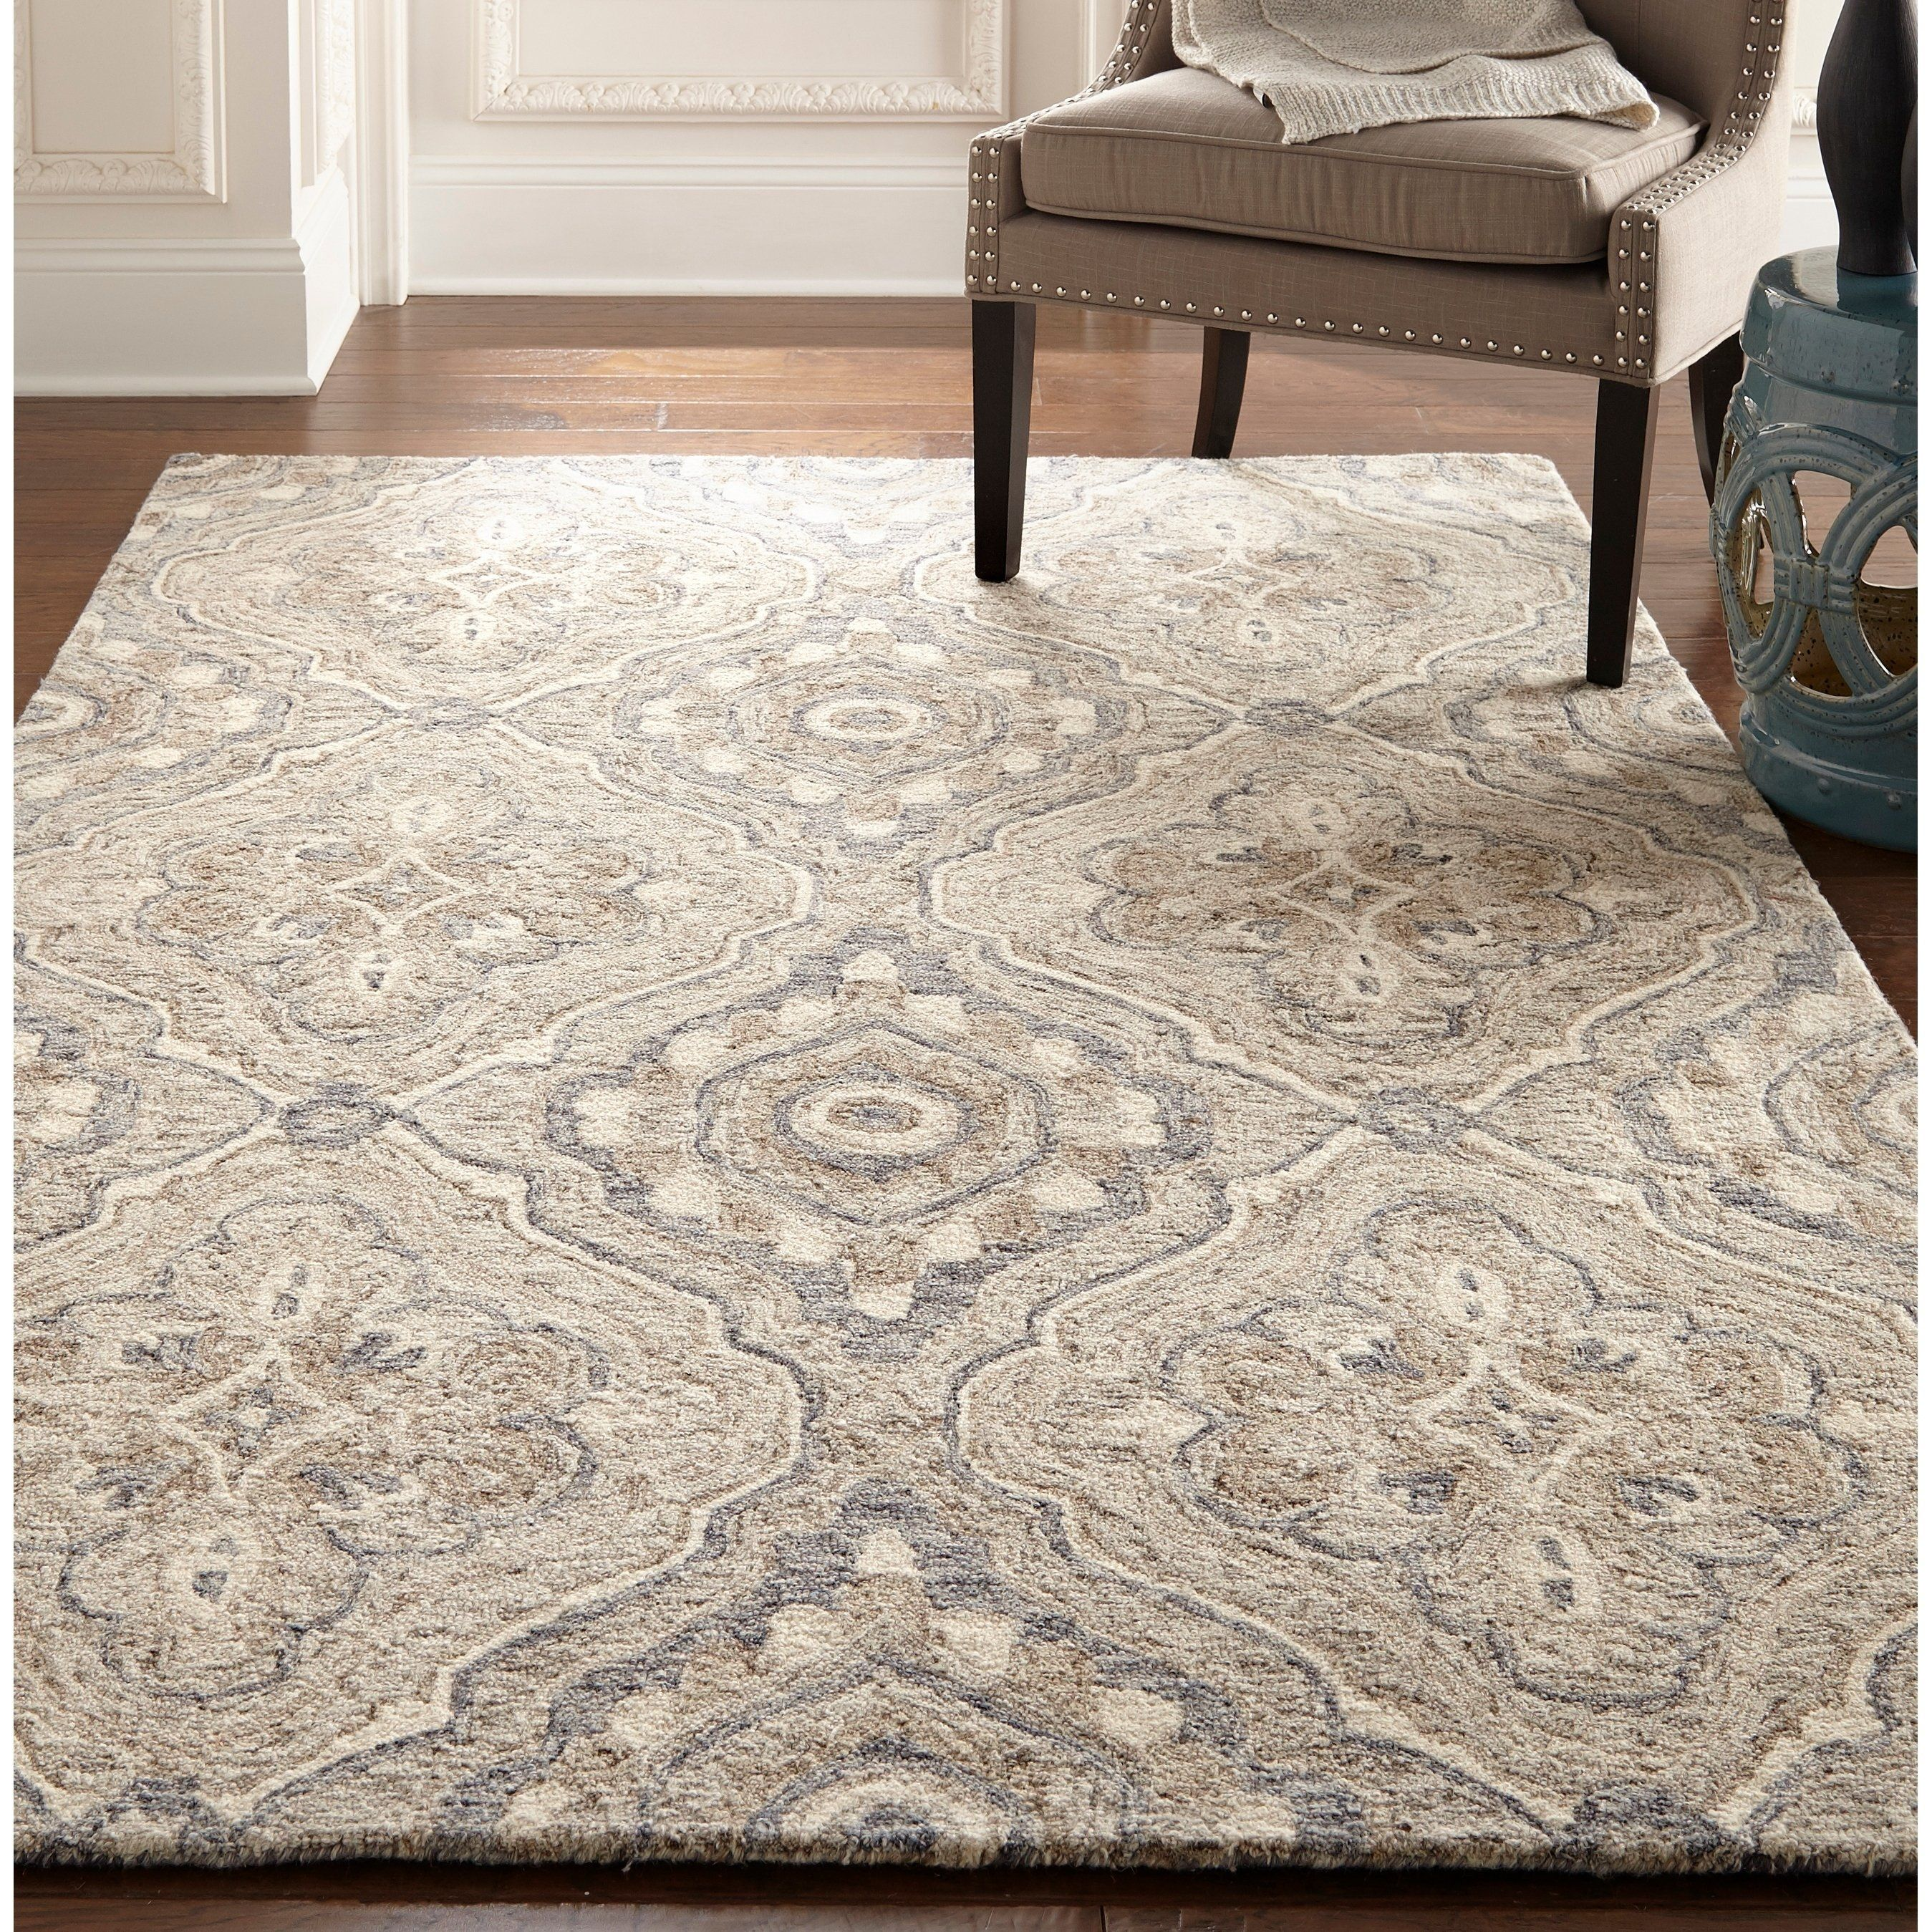 The Anatolia Collection Evokes Old World Style And Quality With Modern Hand Tufting Techniques These Rugs Bring Traditional Sophistication